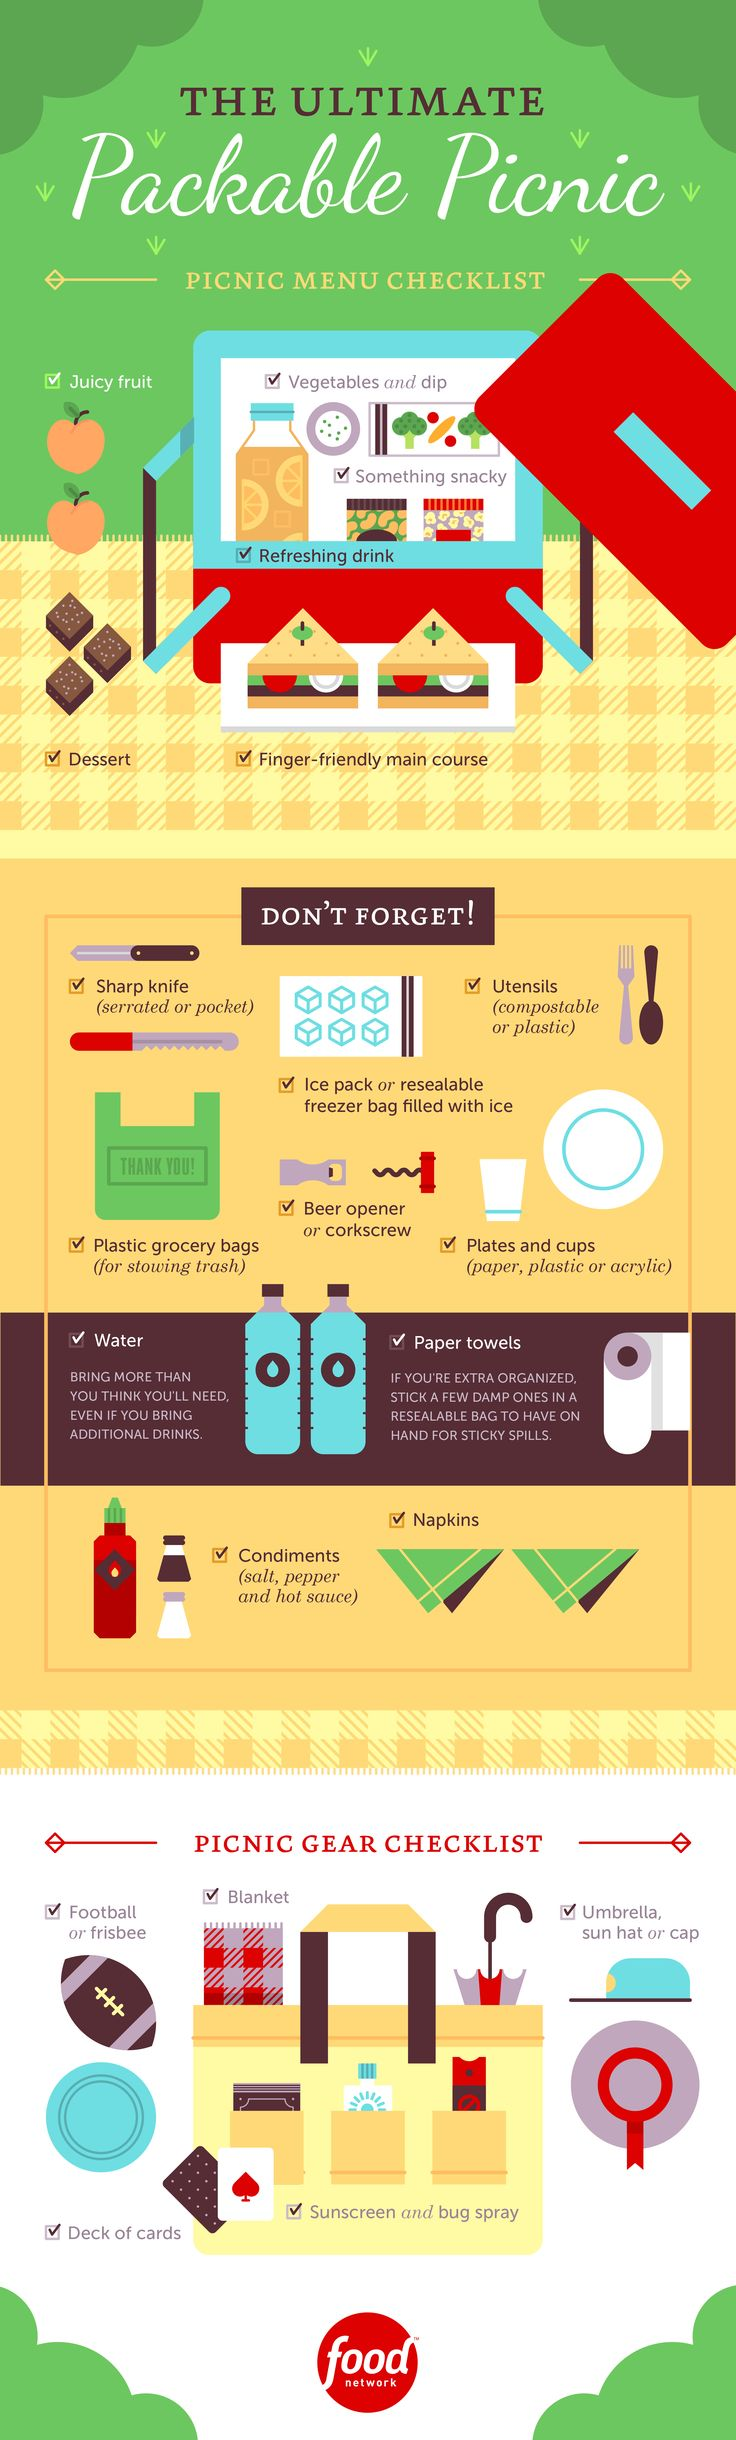 The Ultimate Packable Picnic for Memorial Day [INFOGRAPHIC] | FN Dish – Food Network Blog